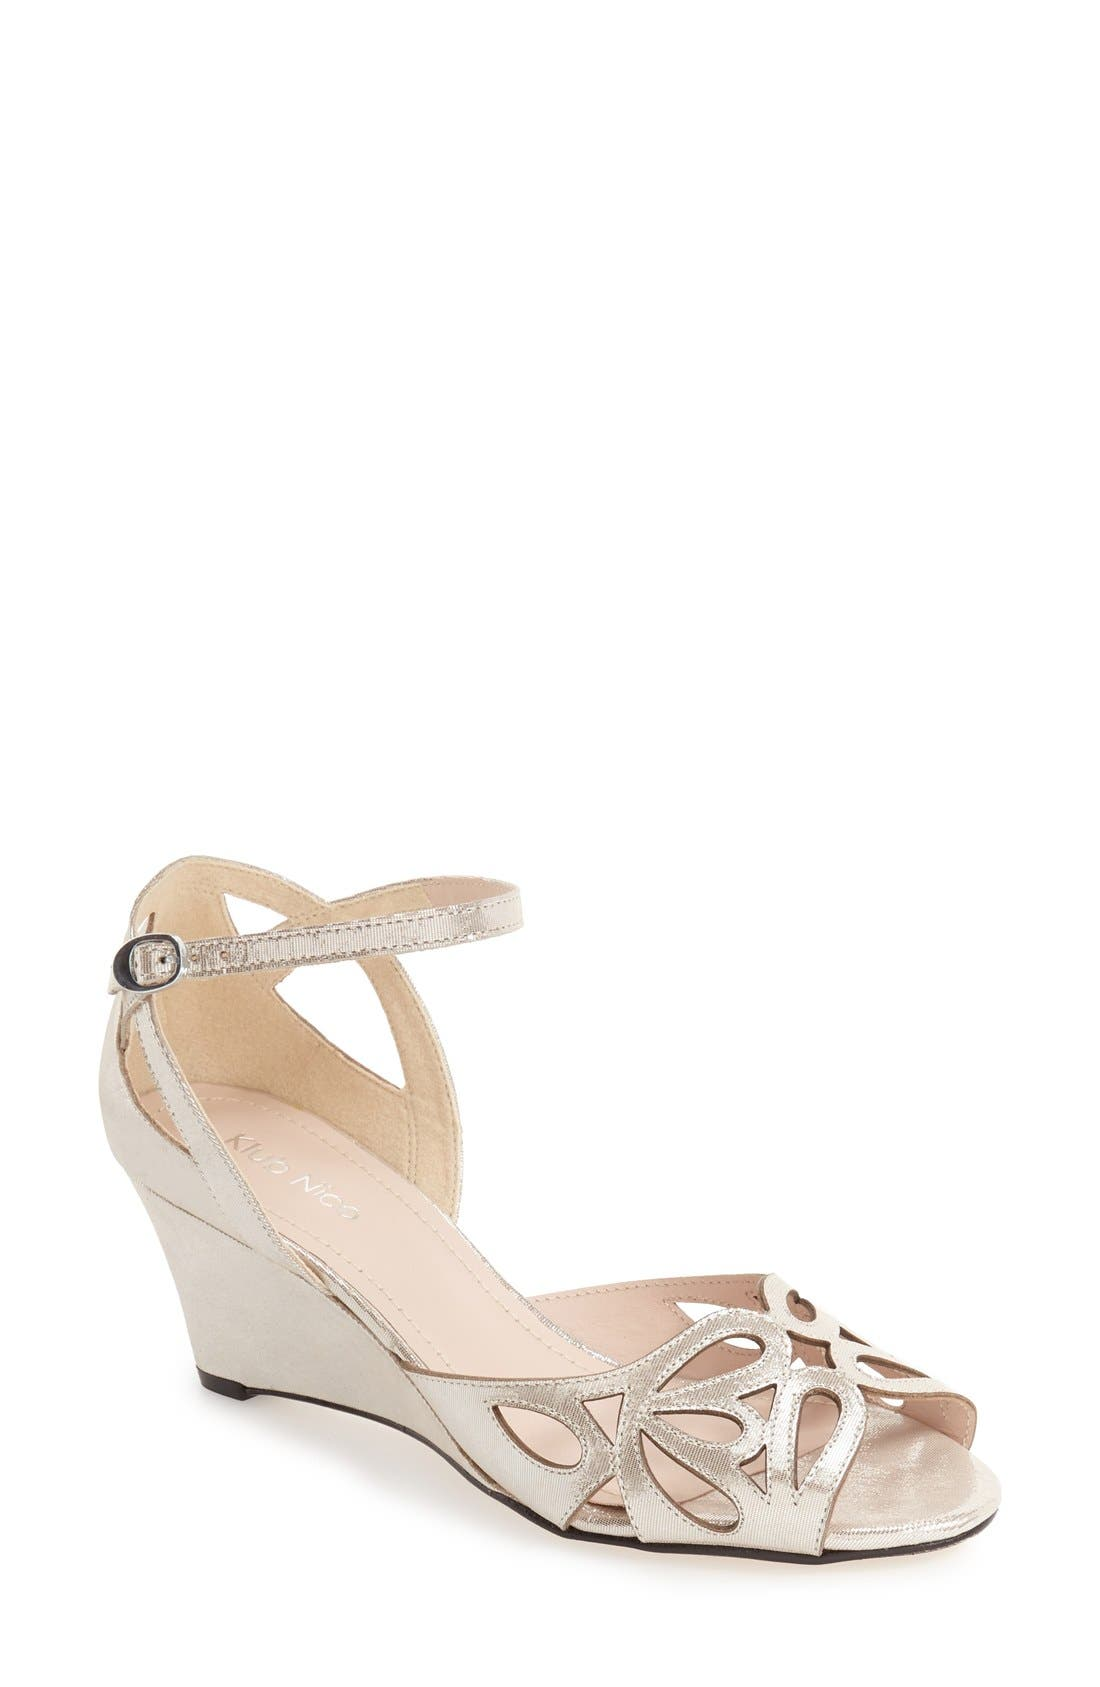 KLUB NICO 'Kismet' Wedge Sandal, Main, color, SILVER LEATHER